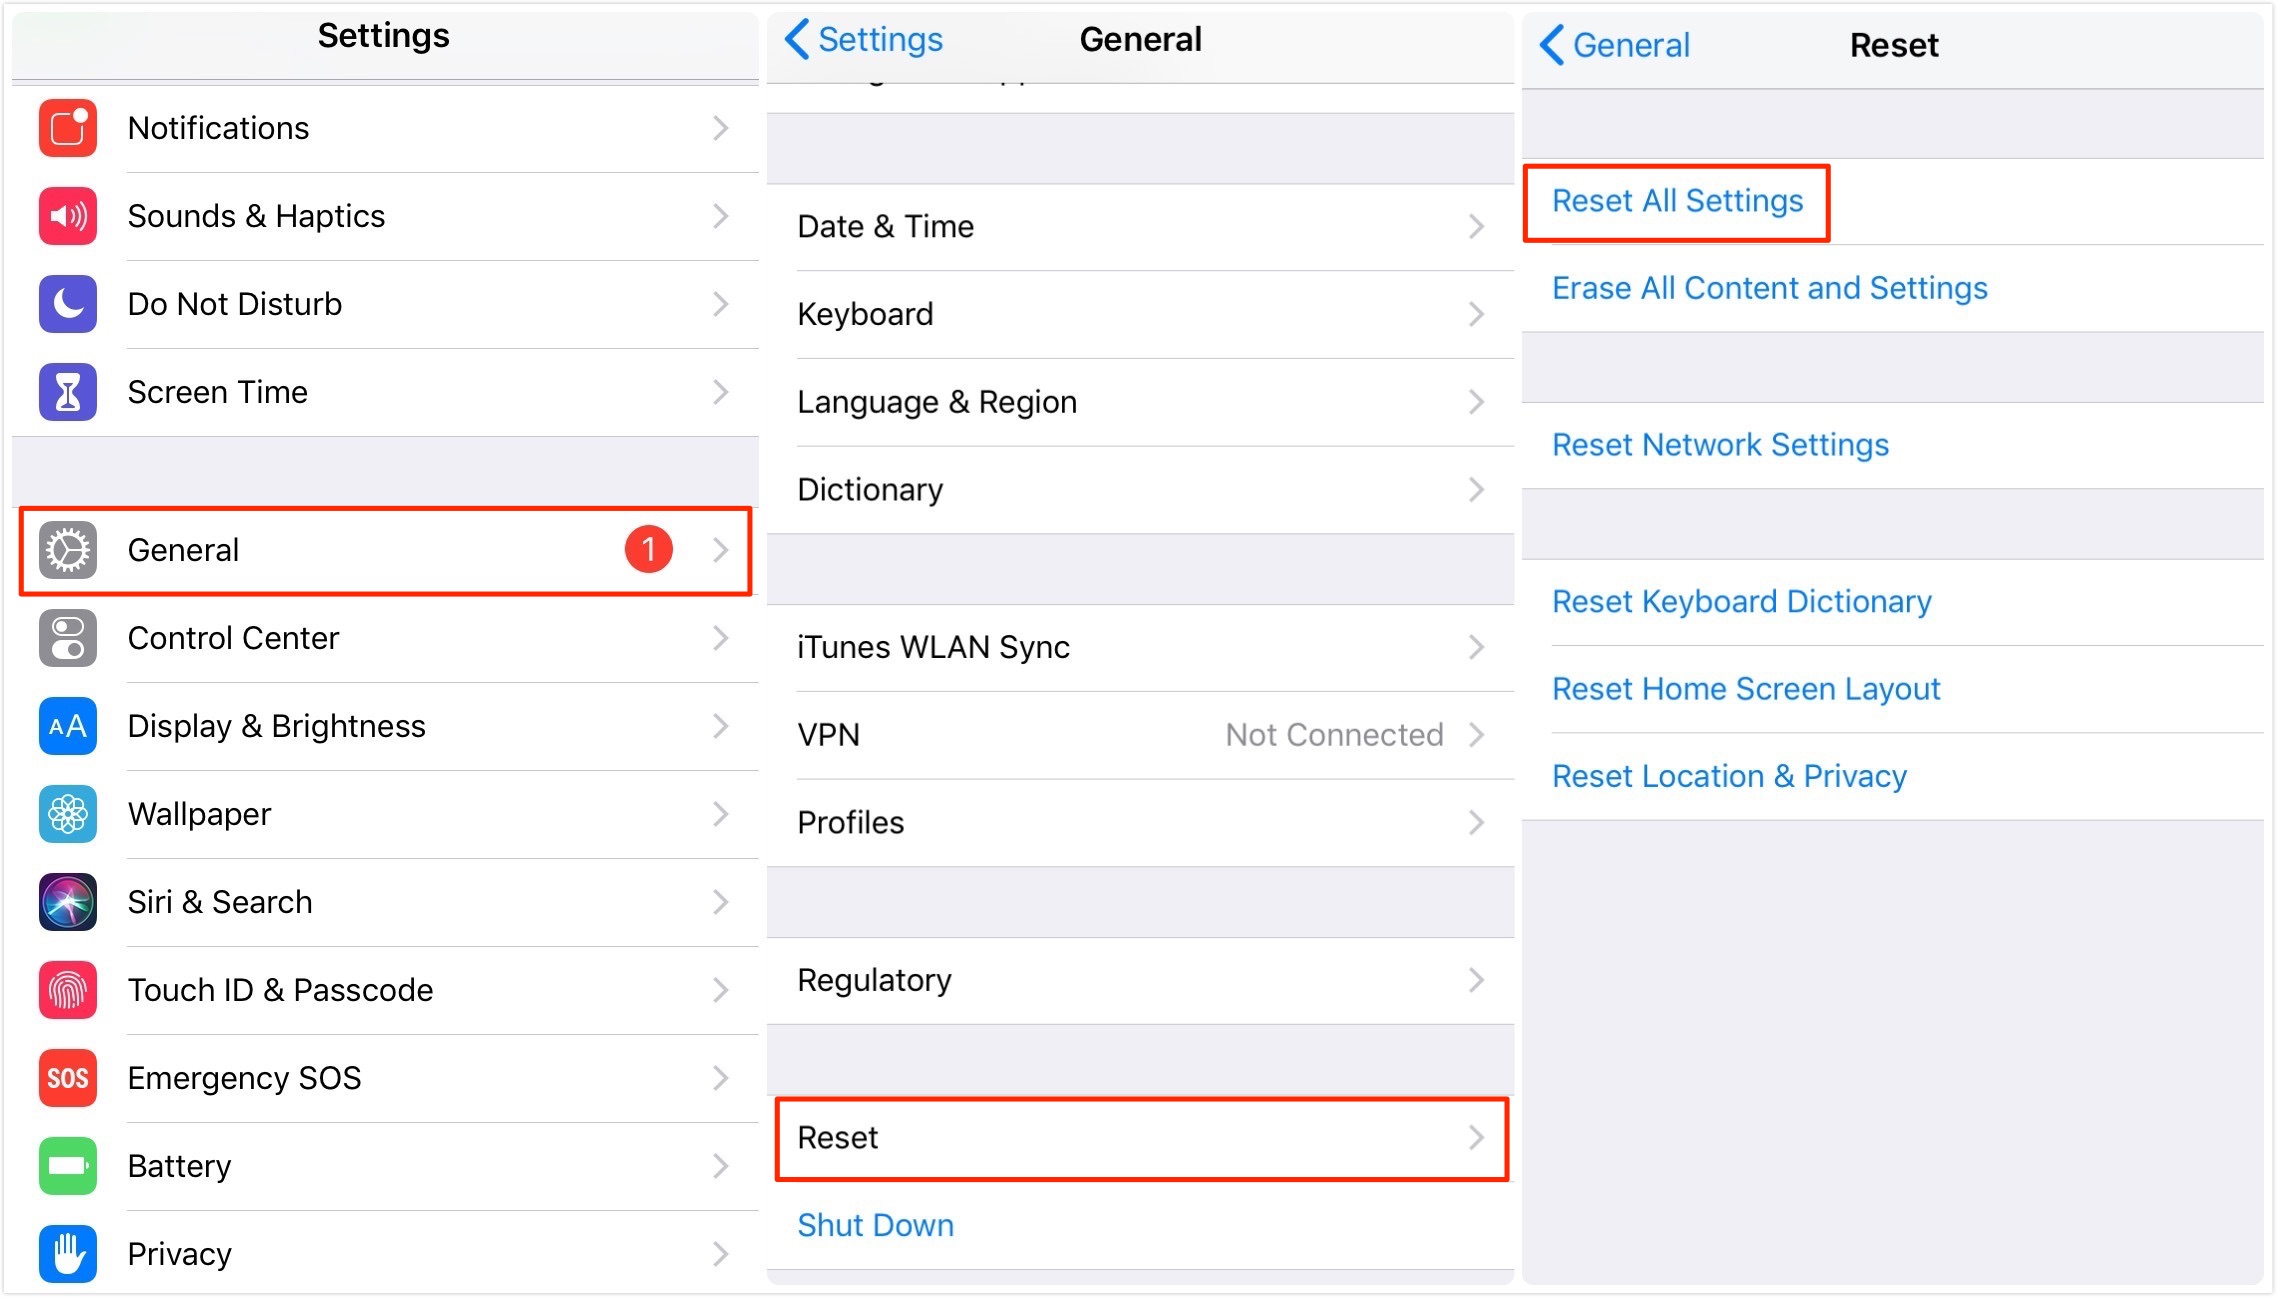 Reset All Settings on iPhone/iPad